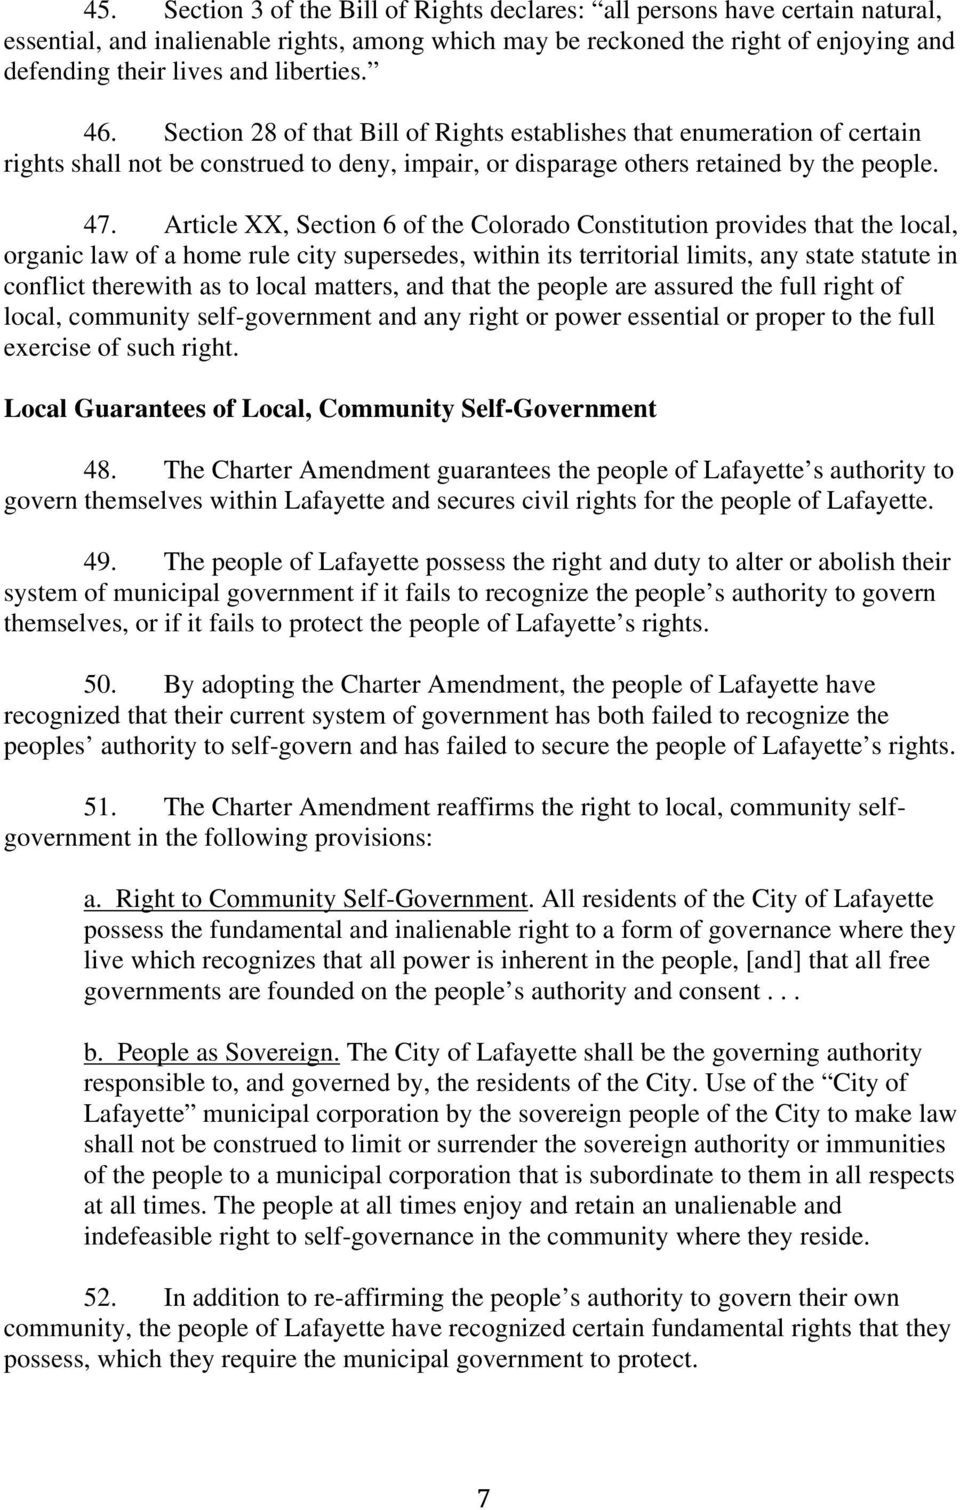 Article XX, Section 6 of the Colorado Constitution provides that the local, organic law of a home rule city supersedes, within its territorial limits, any state statute in conflict therewith as to